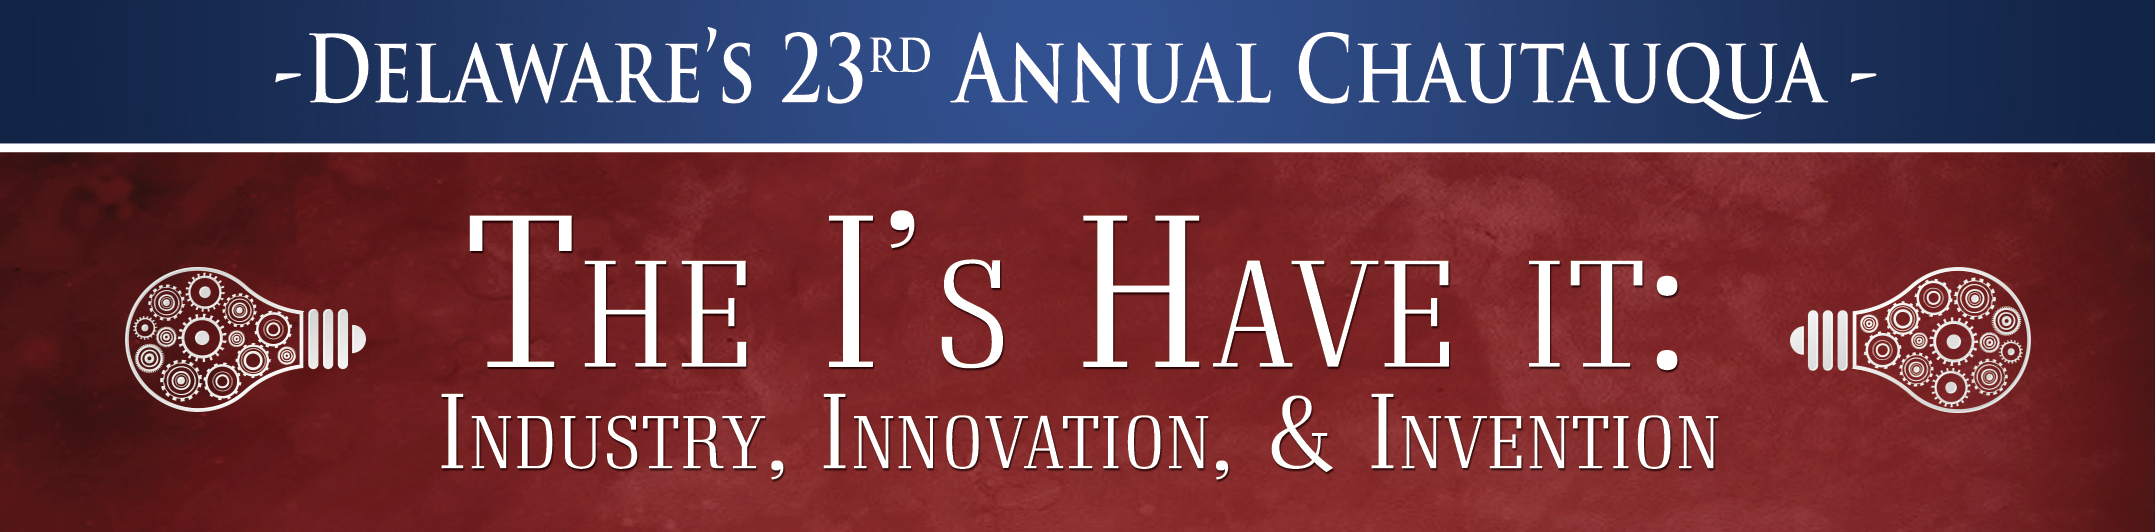 Delaware's 23rd Annual Chautauqua - The I's Have It: Industry, Innovation, and Invention Banner